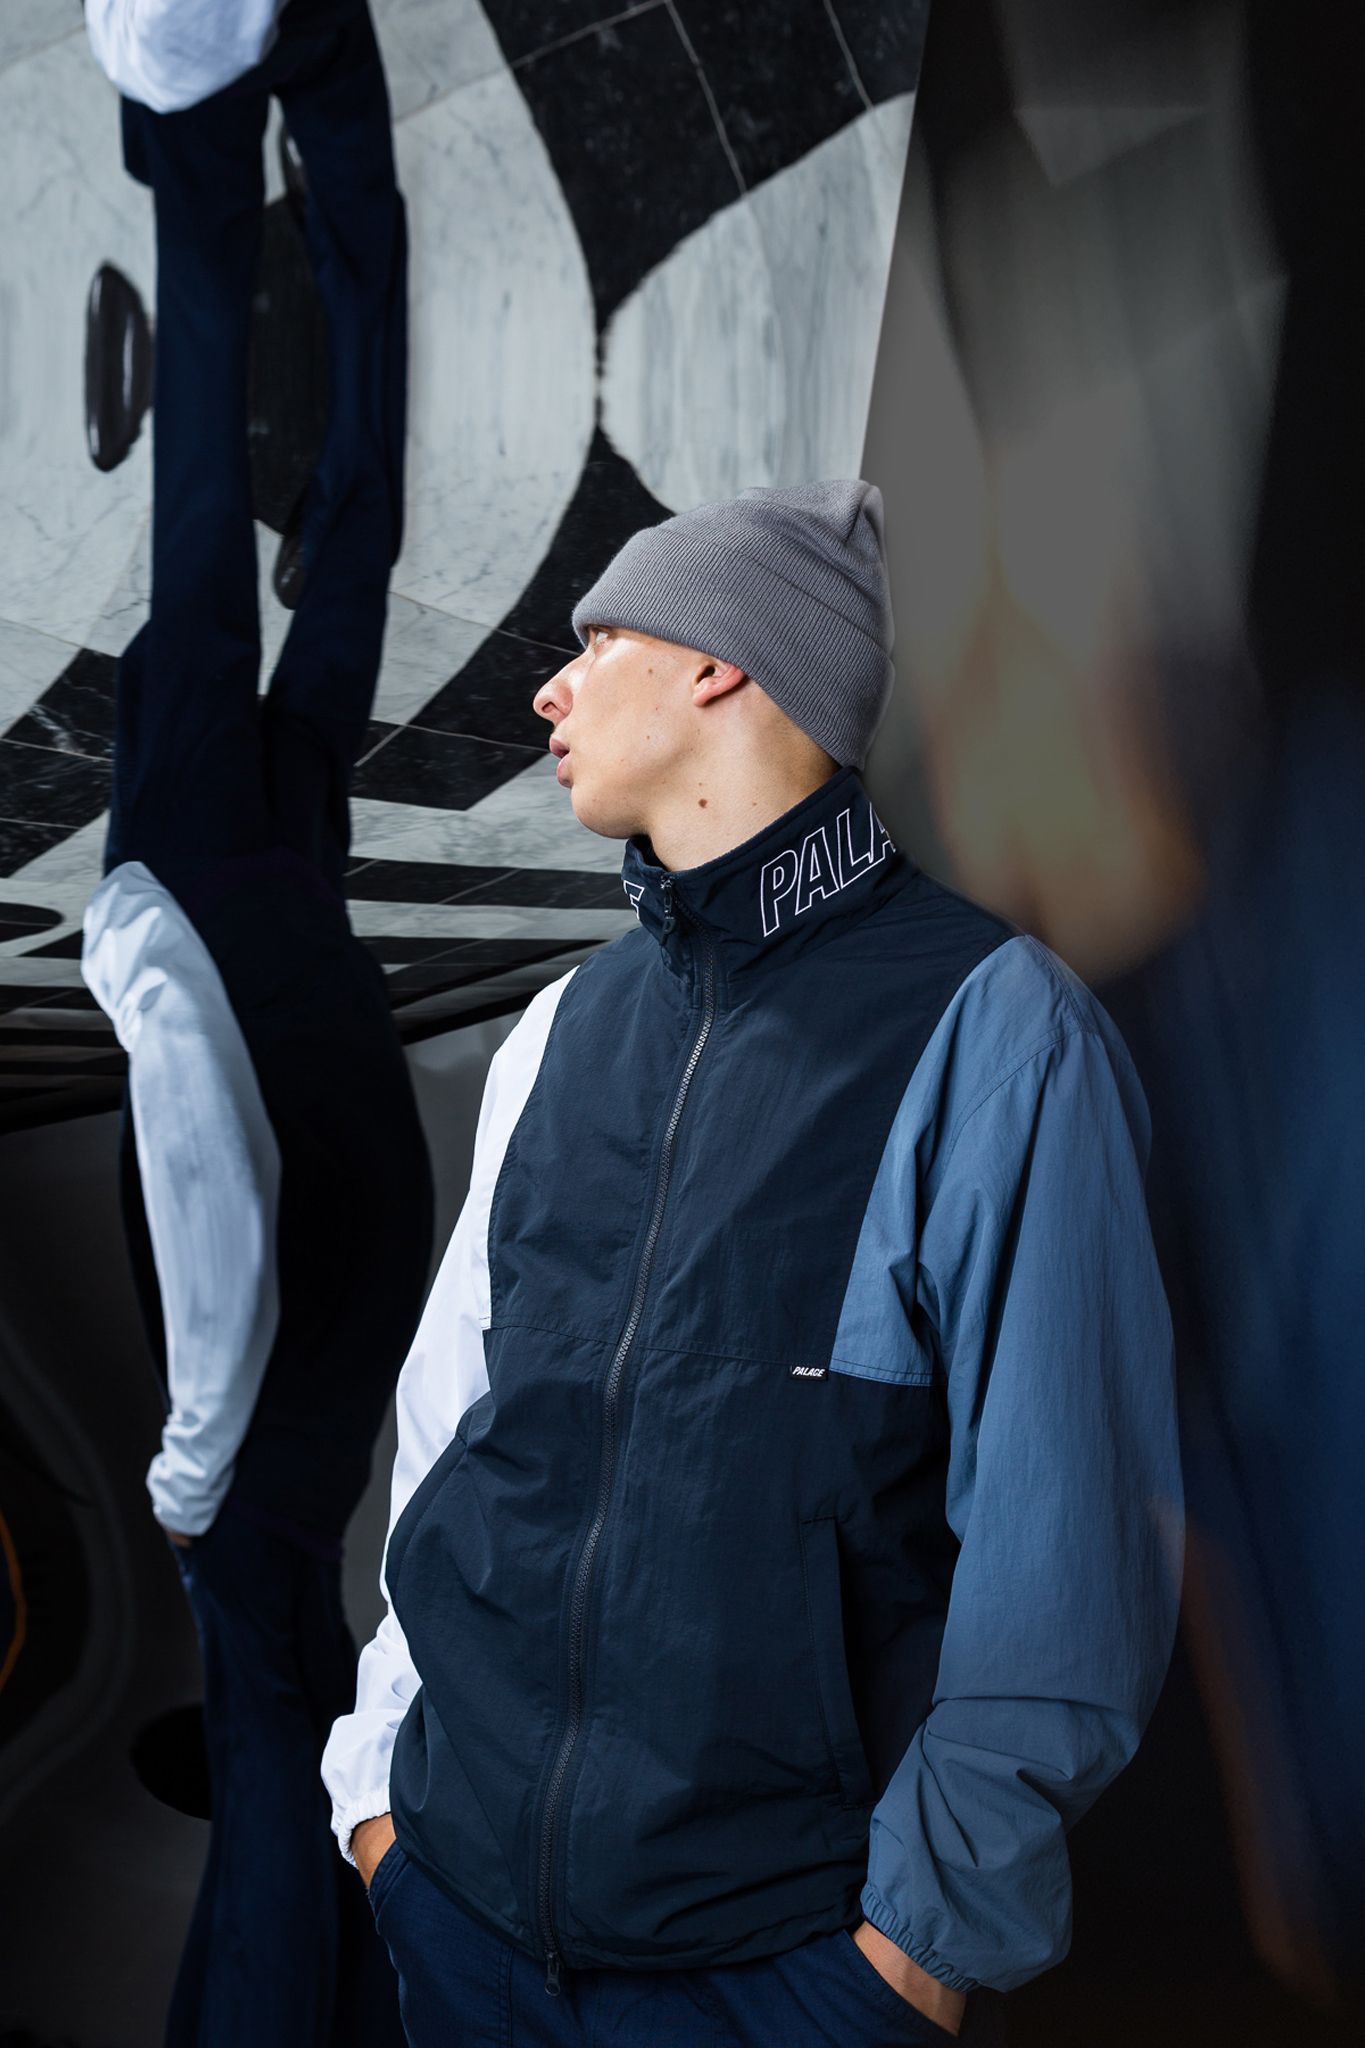 Palace-Fall-2015-Lookbook-01